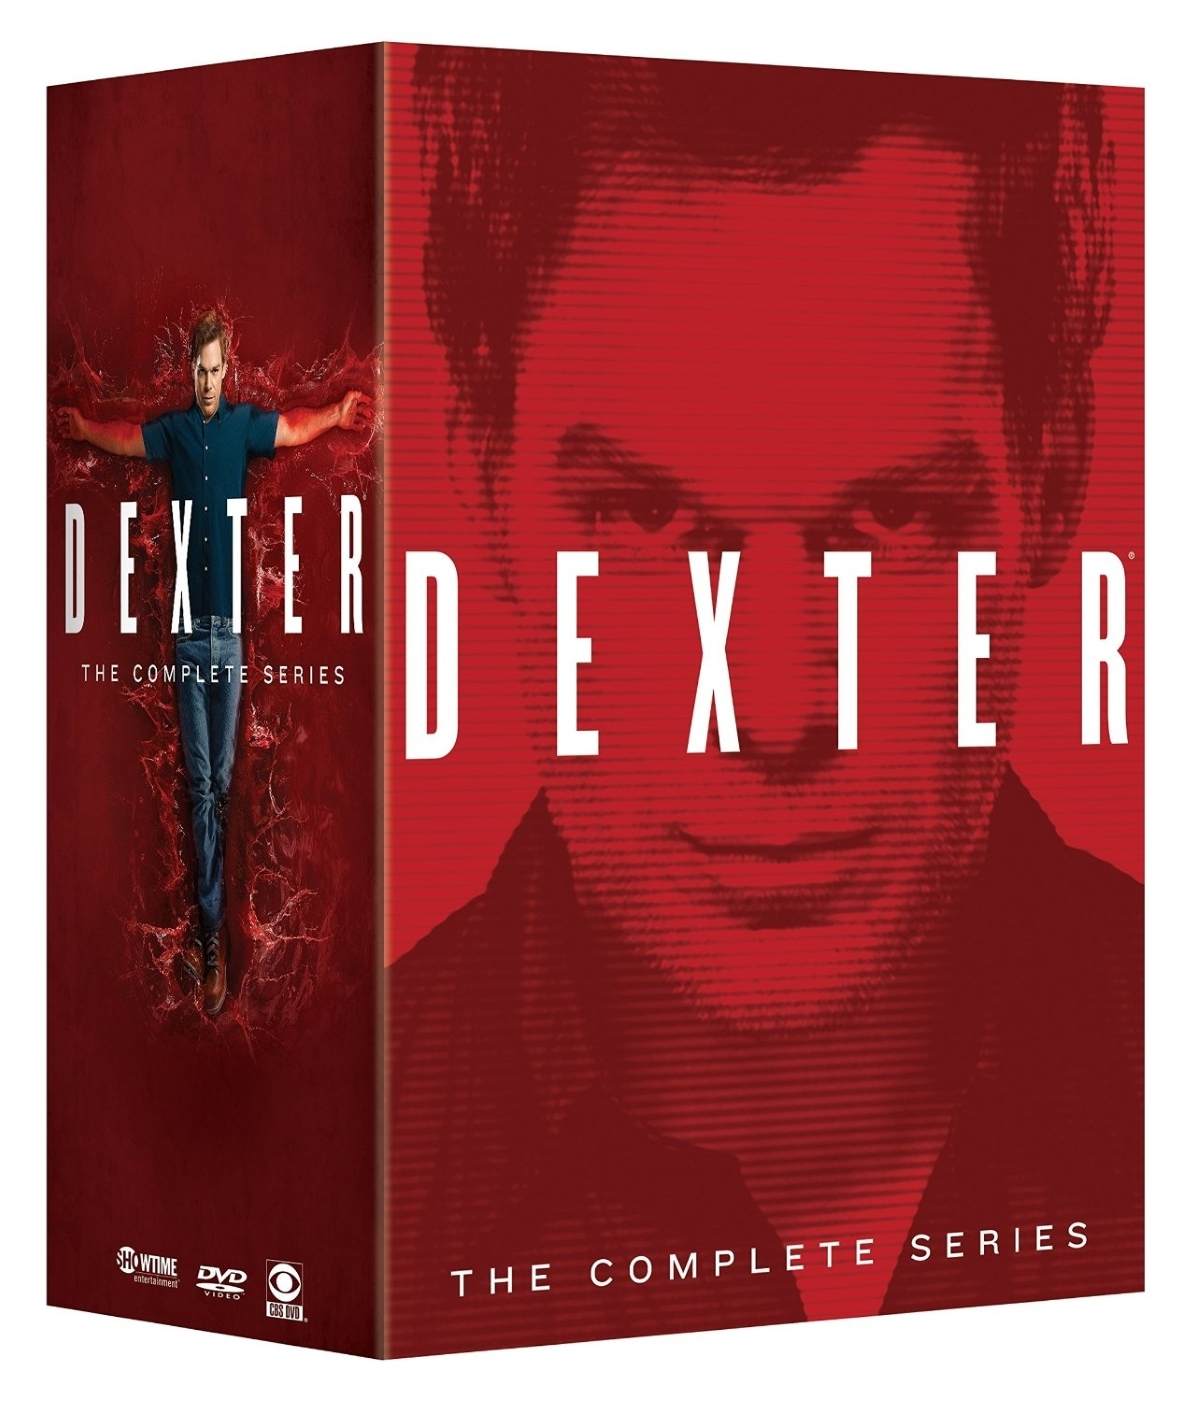 Dexter the complete series season 1 7  dvd 2015 32 disc  1 2 3 4 5 6 7 m.c.hall